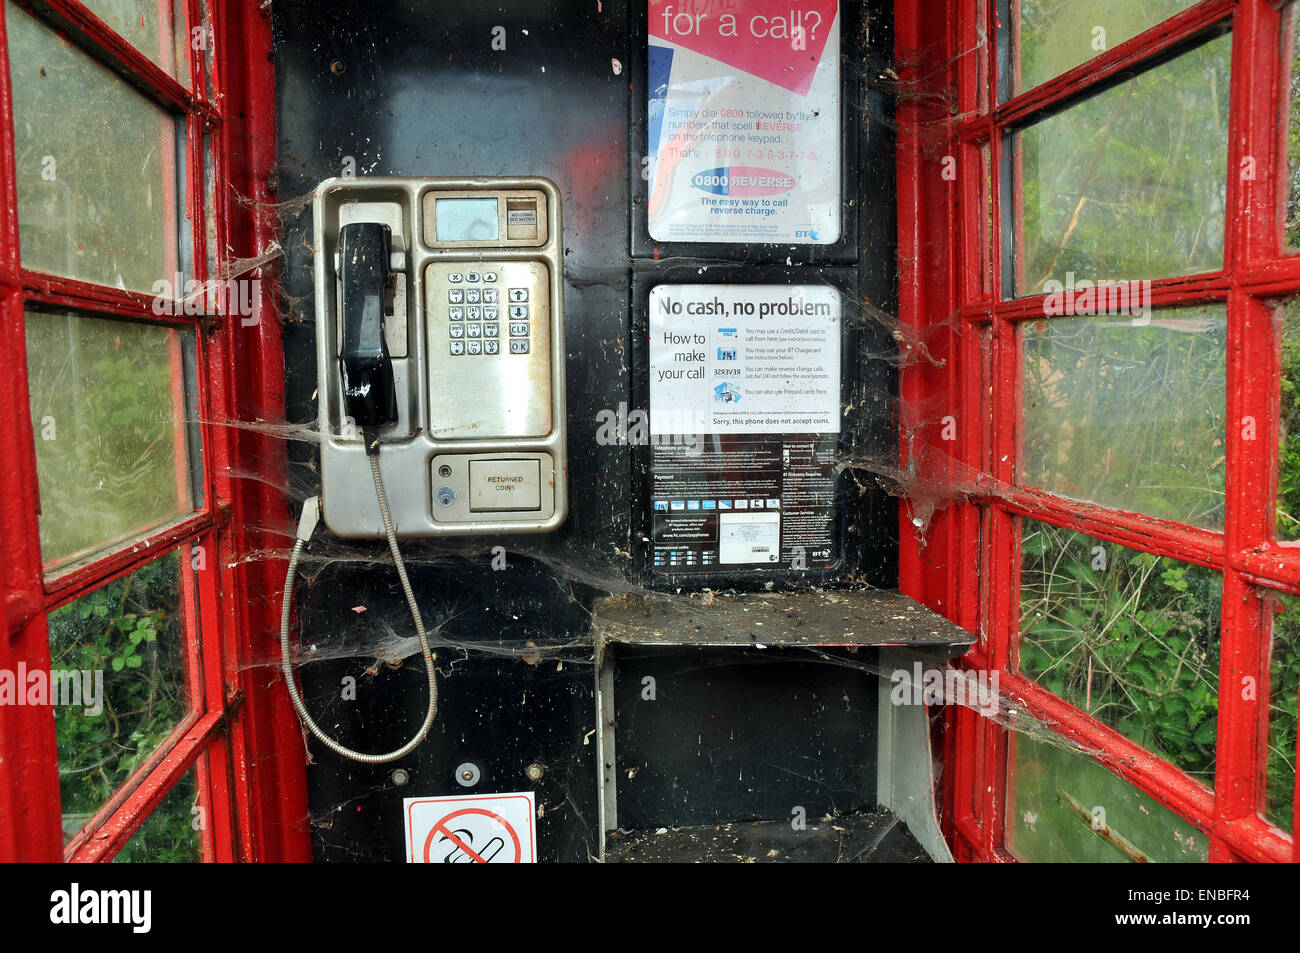 A spiders web inside an old telephone box - Stock Image